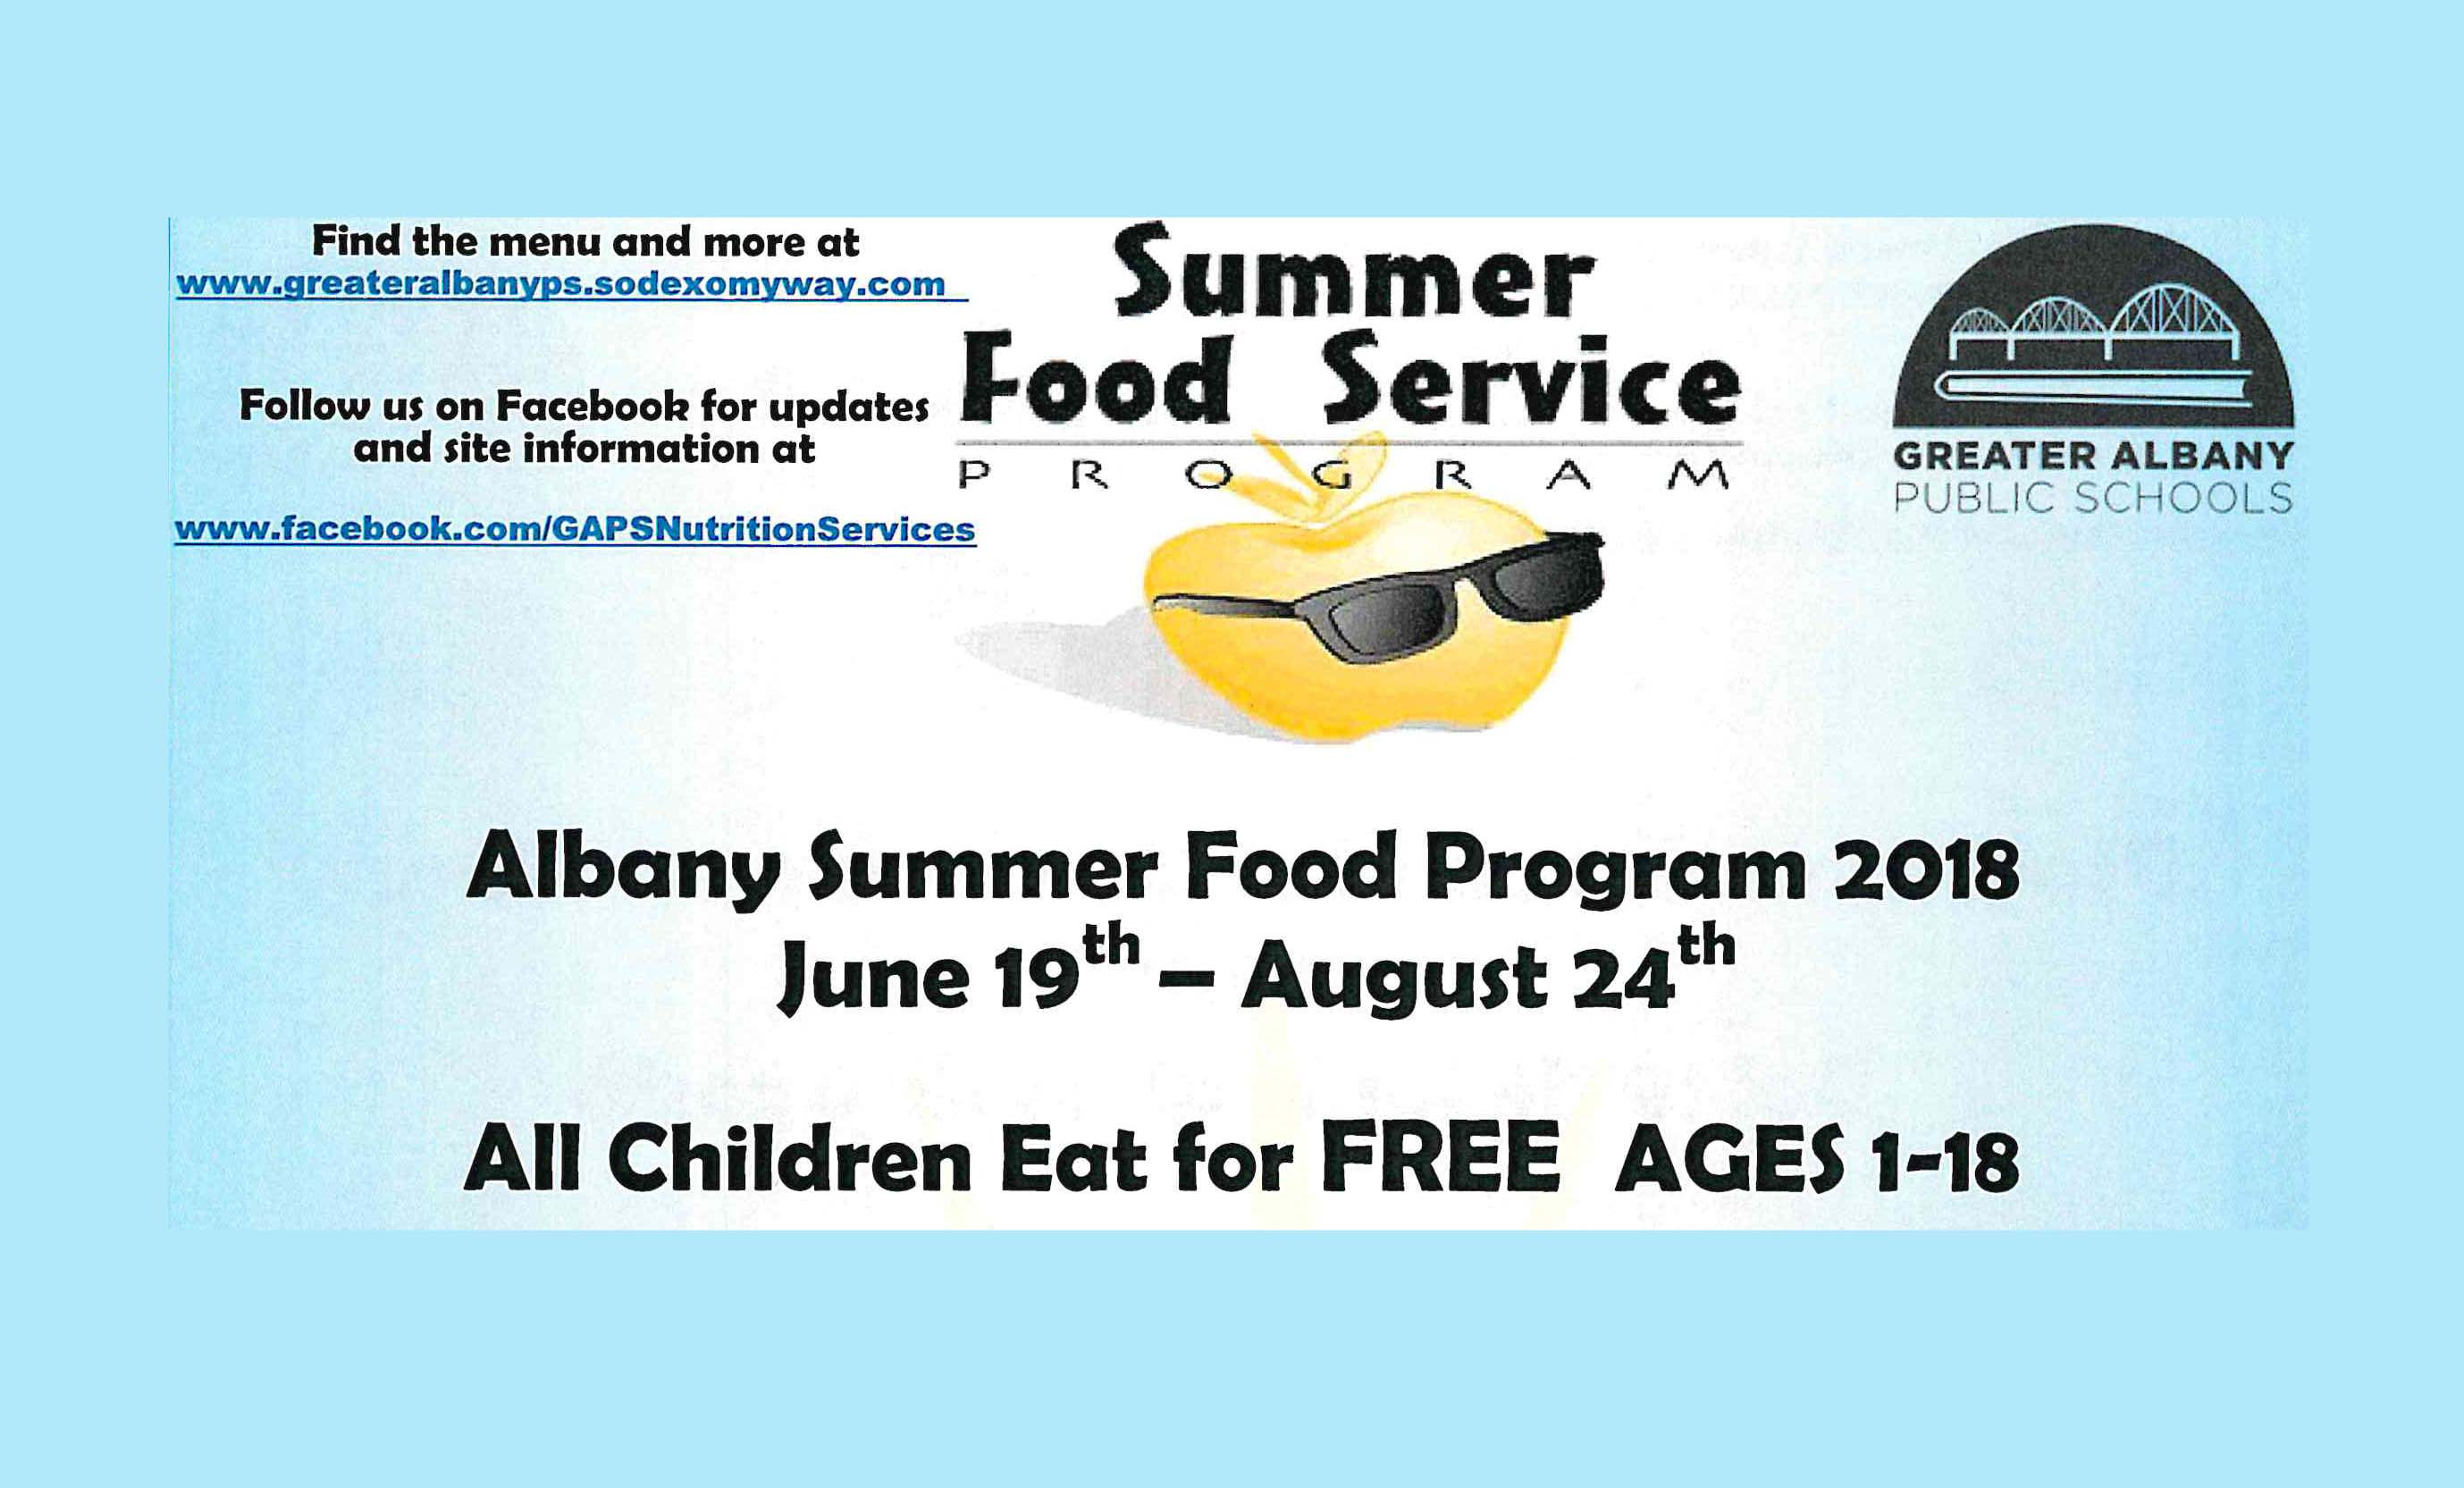 Summer food program offers free meals to children through Aug. 24